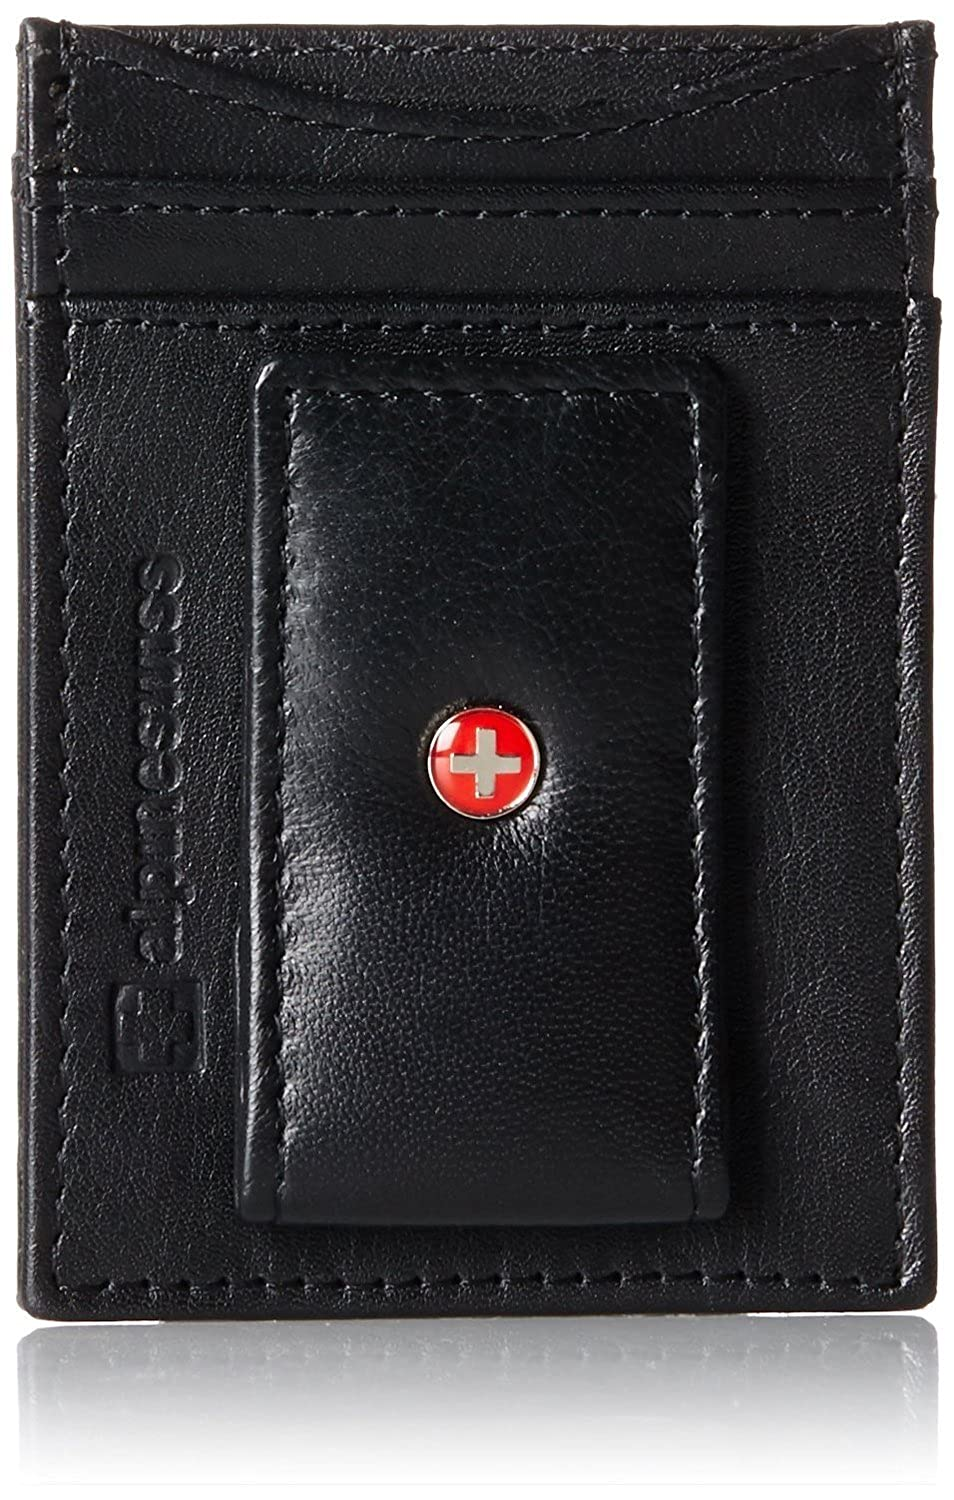 Фото - Genuine Leather Money Clip front pocket wallet with magnet clip and card ID Case man clutch wallet card leather bag pockets bifold money clip black blue